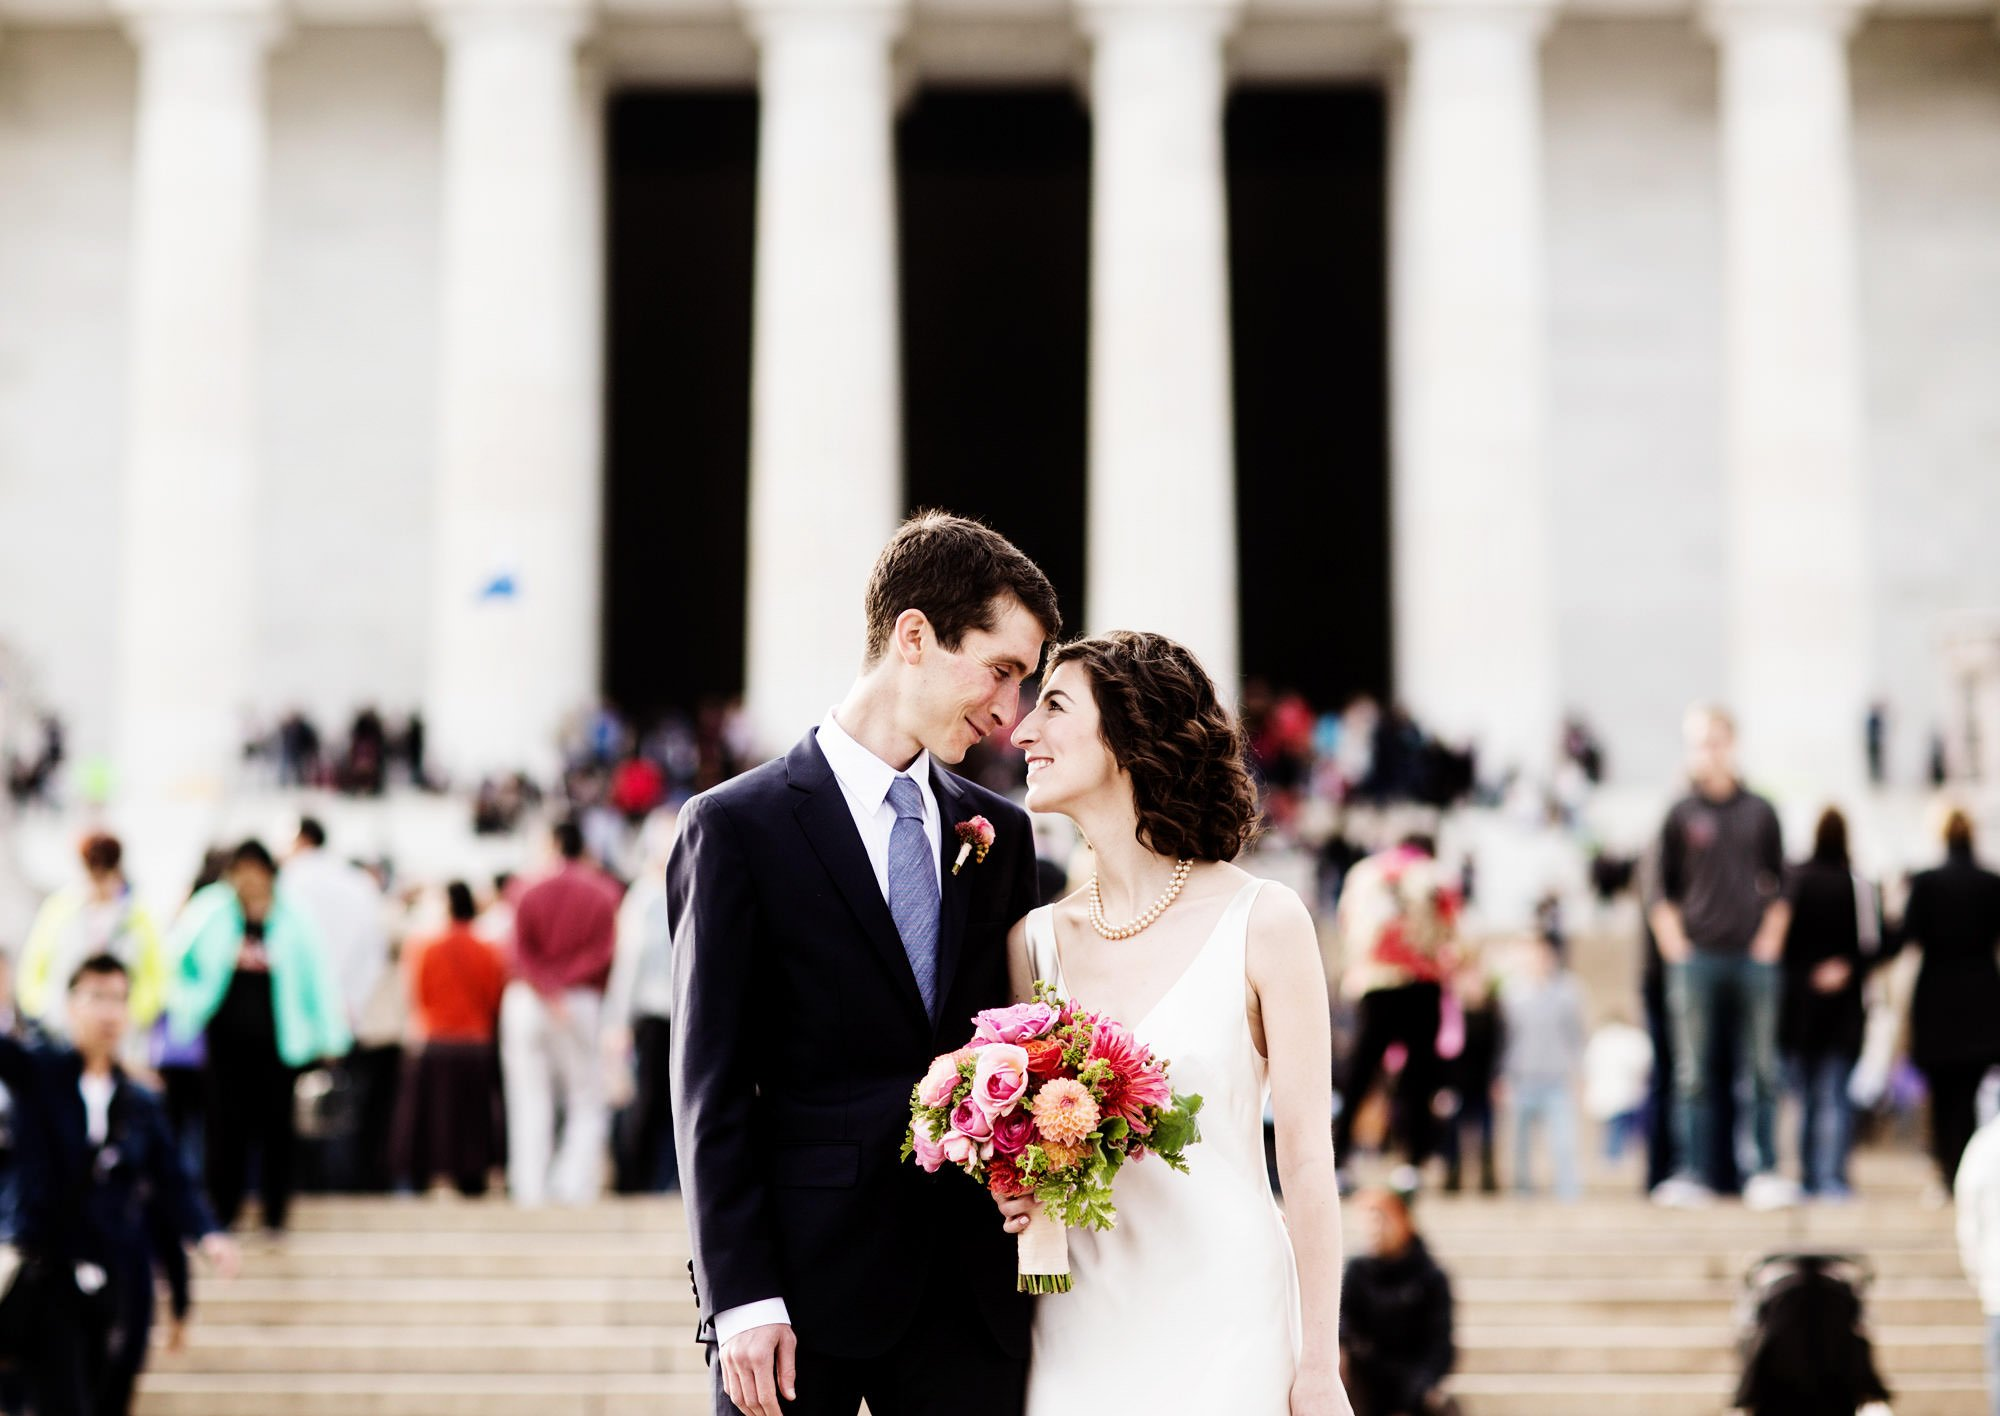 The bride and groom pose for a portrait in front of the Lincoln Memorial.